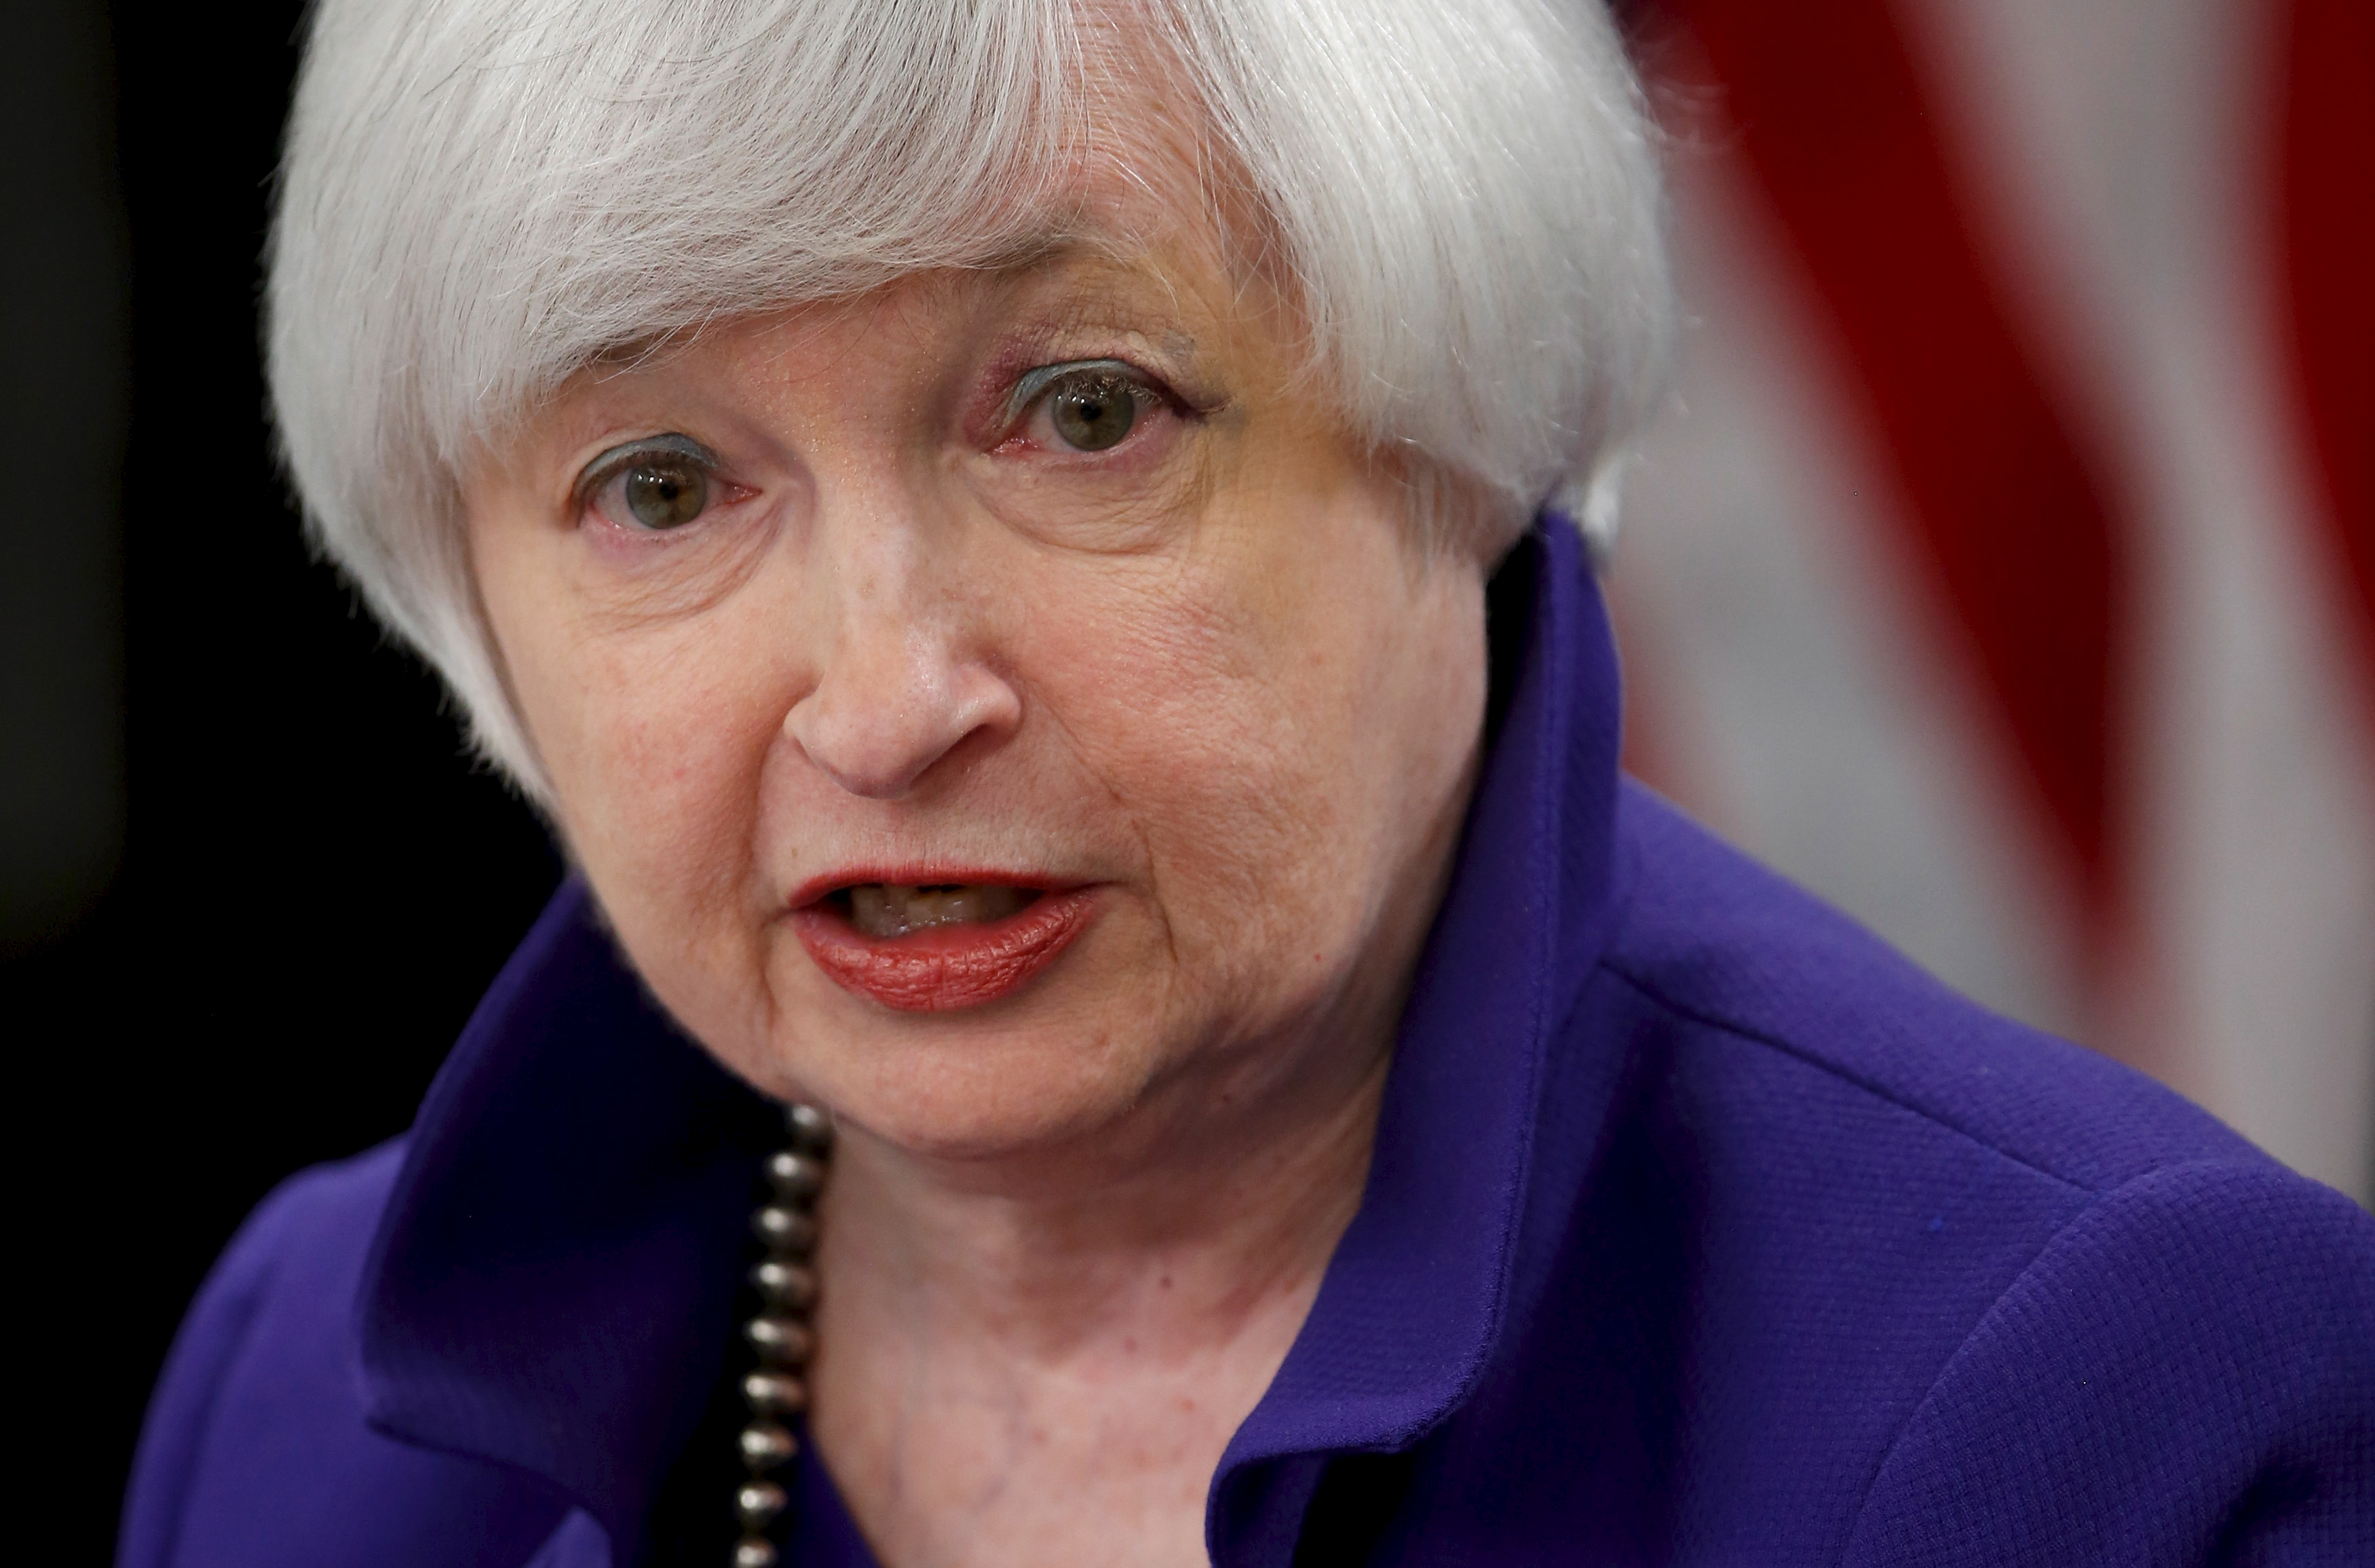 Yellen answers a reporter's question during a news conference in Washington